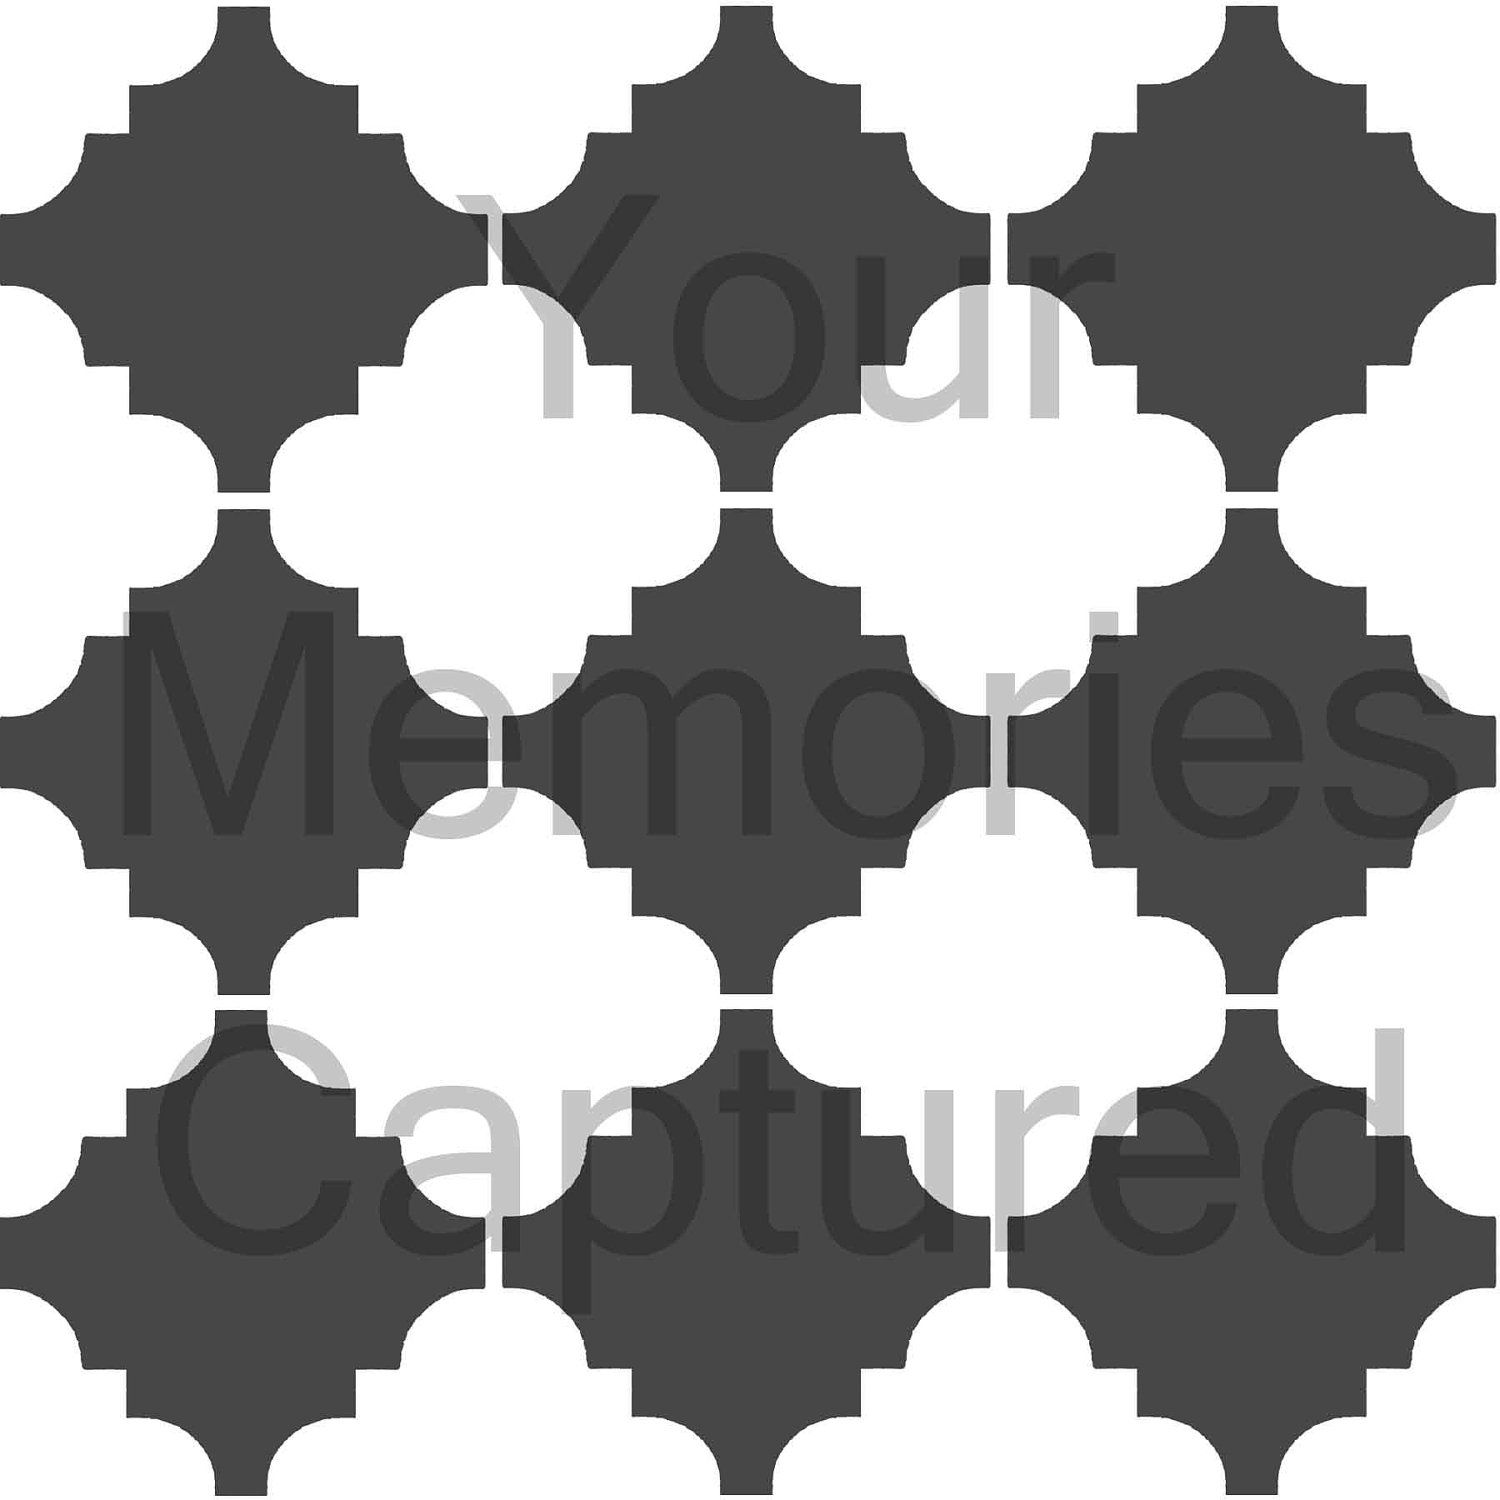 Modern Quatrefoil Reusable Stencil - for fabric, wood, paper, canvas on outhouse prints, outhouse posters, outhouse ornaments, outhouse signs, outhouse theme decor, outhouse kits, outhouse decorations, outhouse fabric, outhouse silhouette, outhouse foam, outhouse stamps,